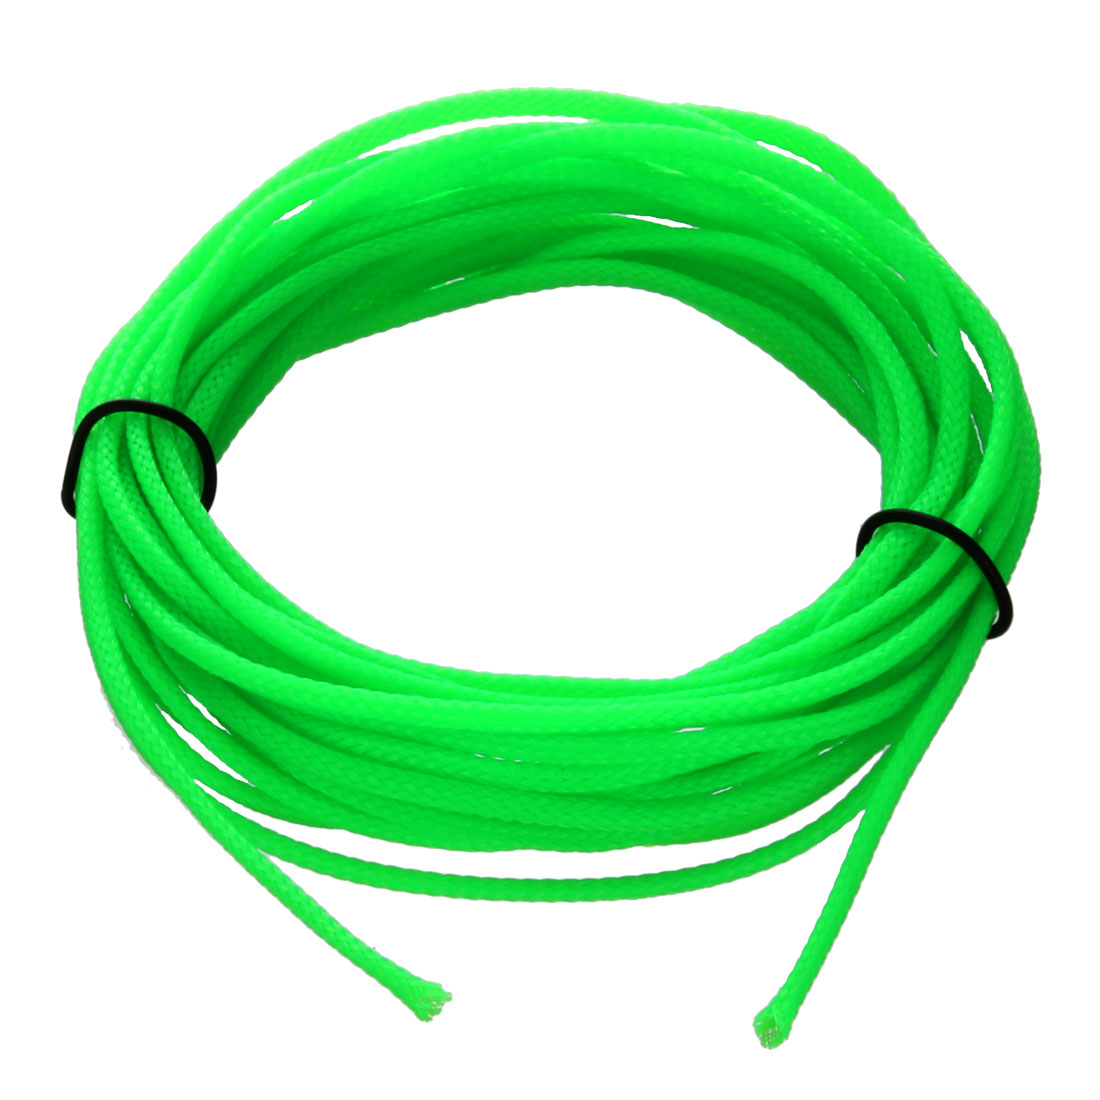 4mm Dia Tight Braided PET Expandable Sleeving Cable Wrap Sheath Fluorescent Green 16Ft